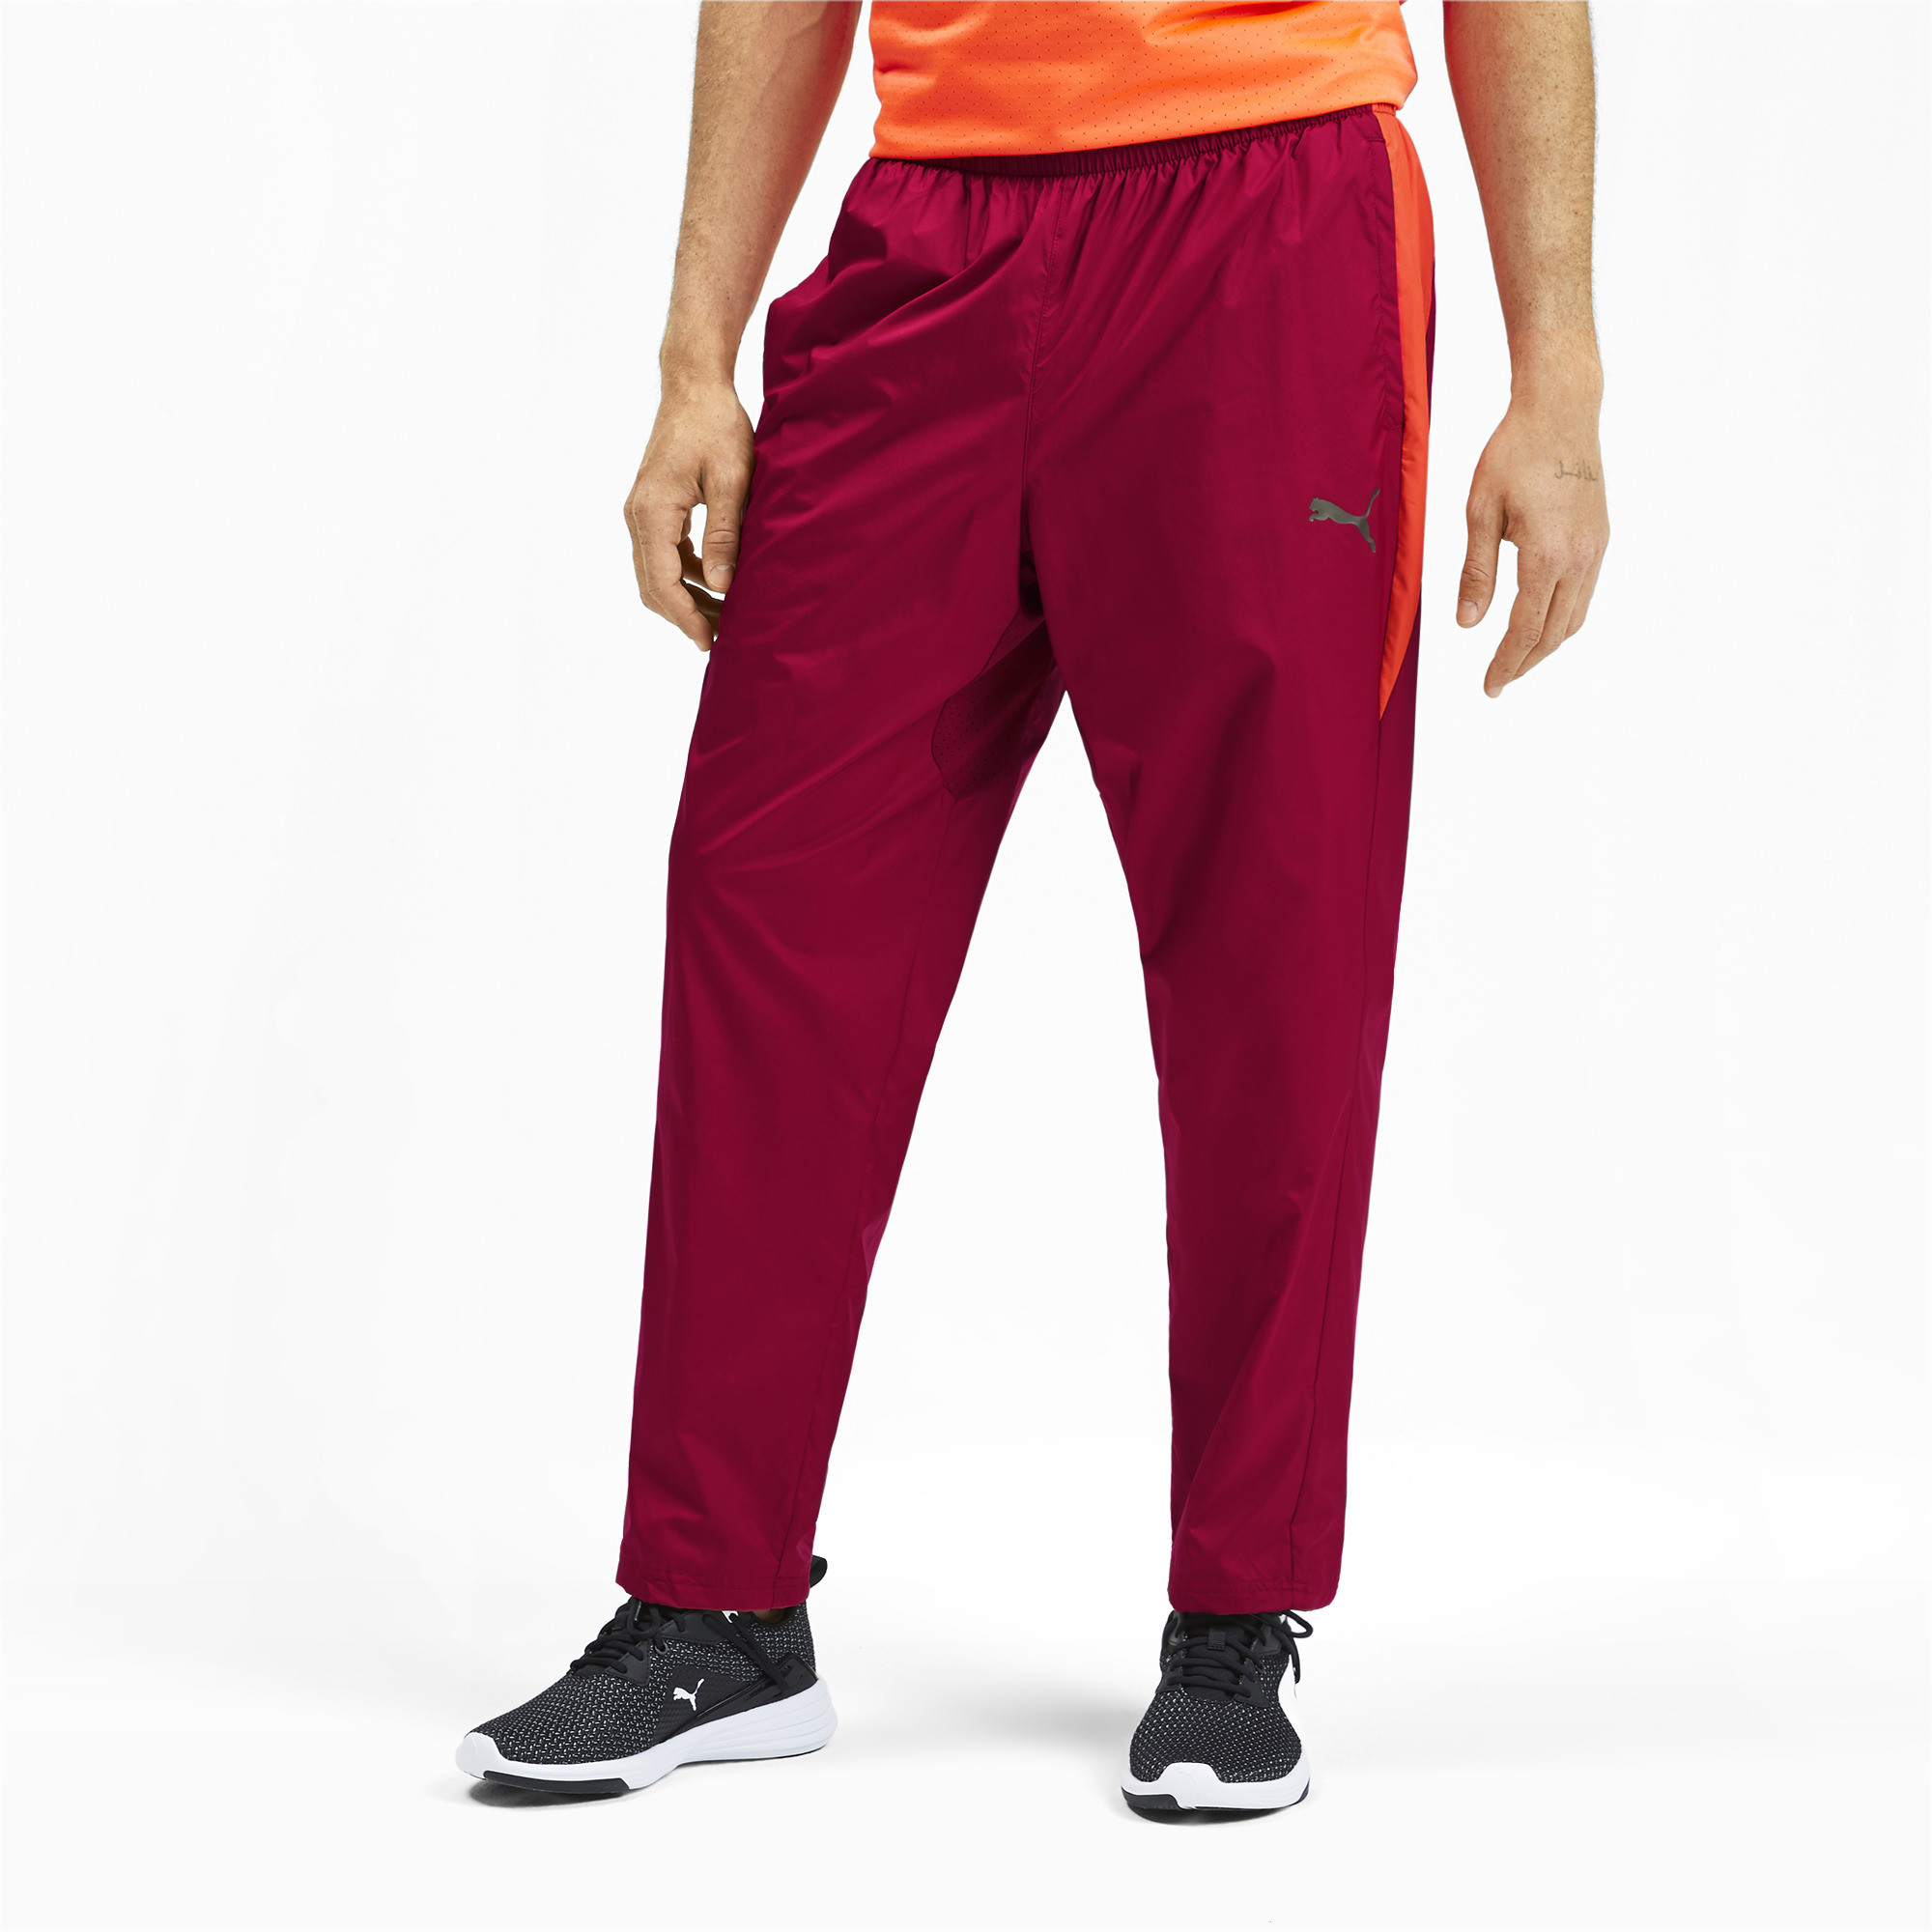 PUMA-Reactive-Men-039-s-Woven-Pants-Men-Woven-Pants-Training miniatura 9